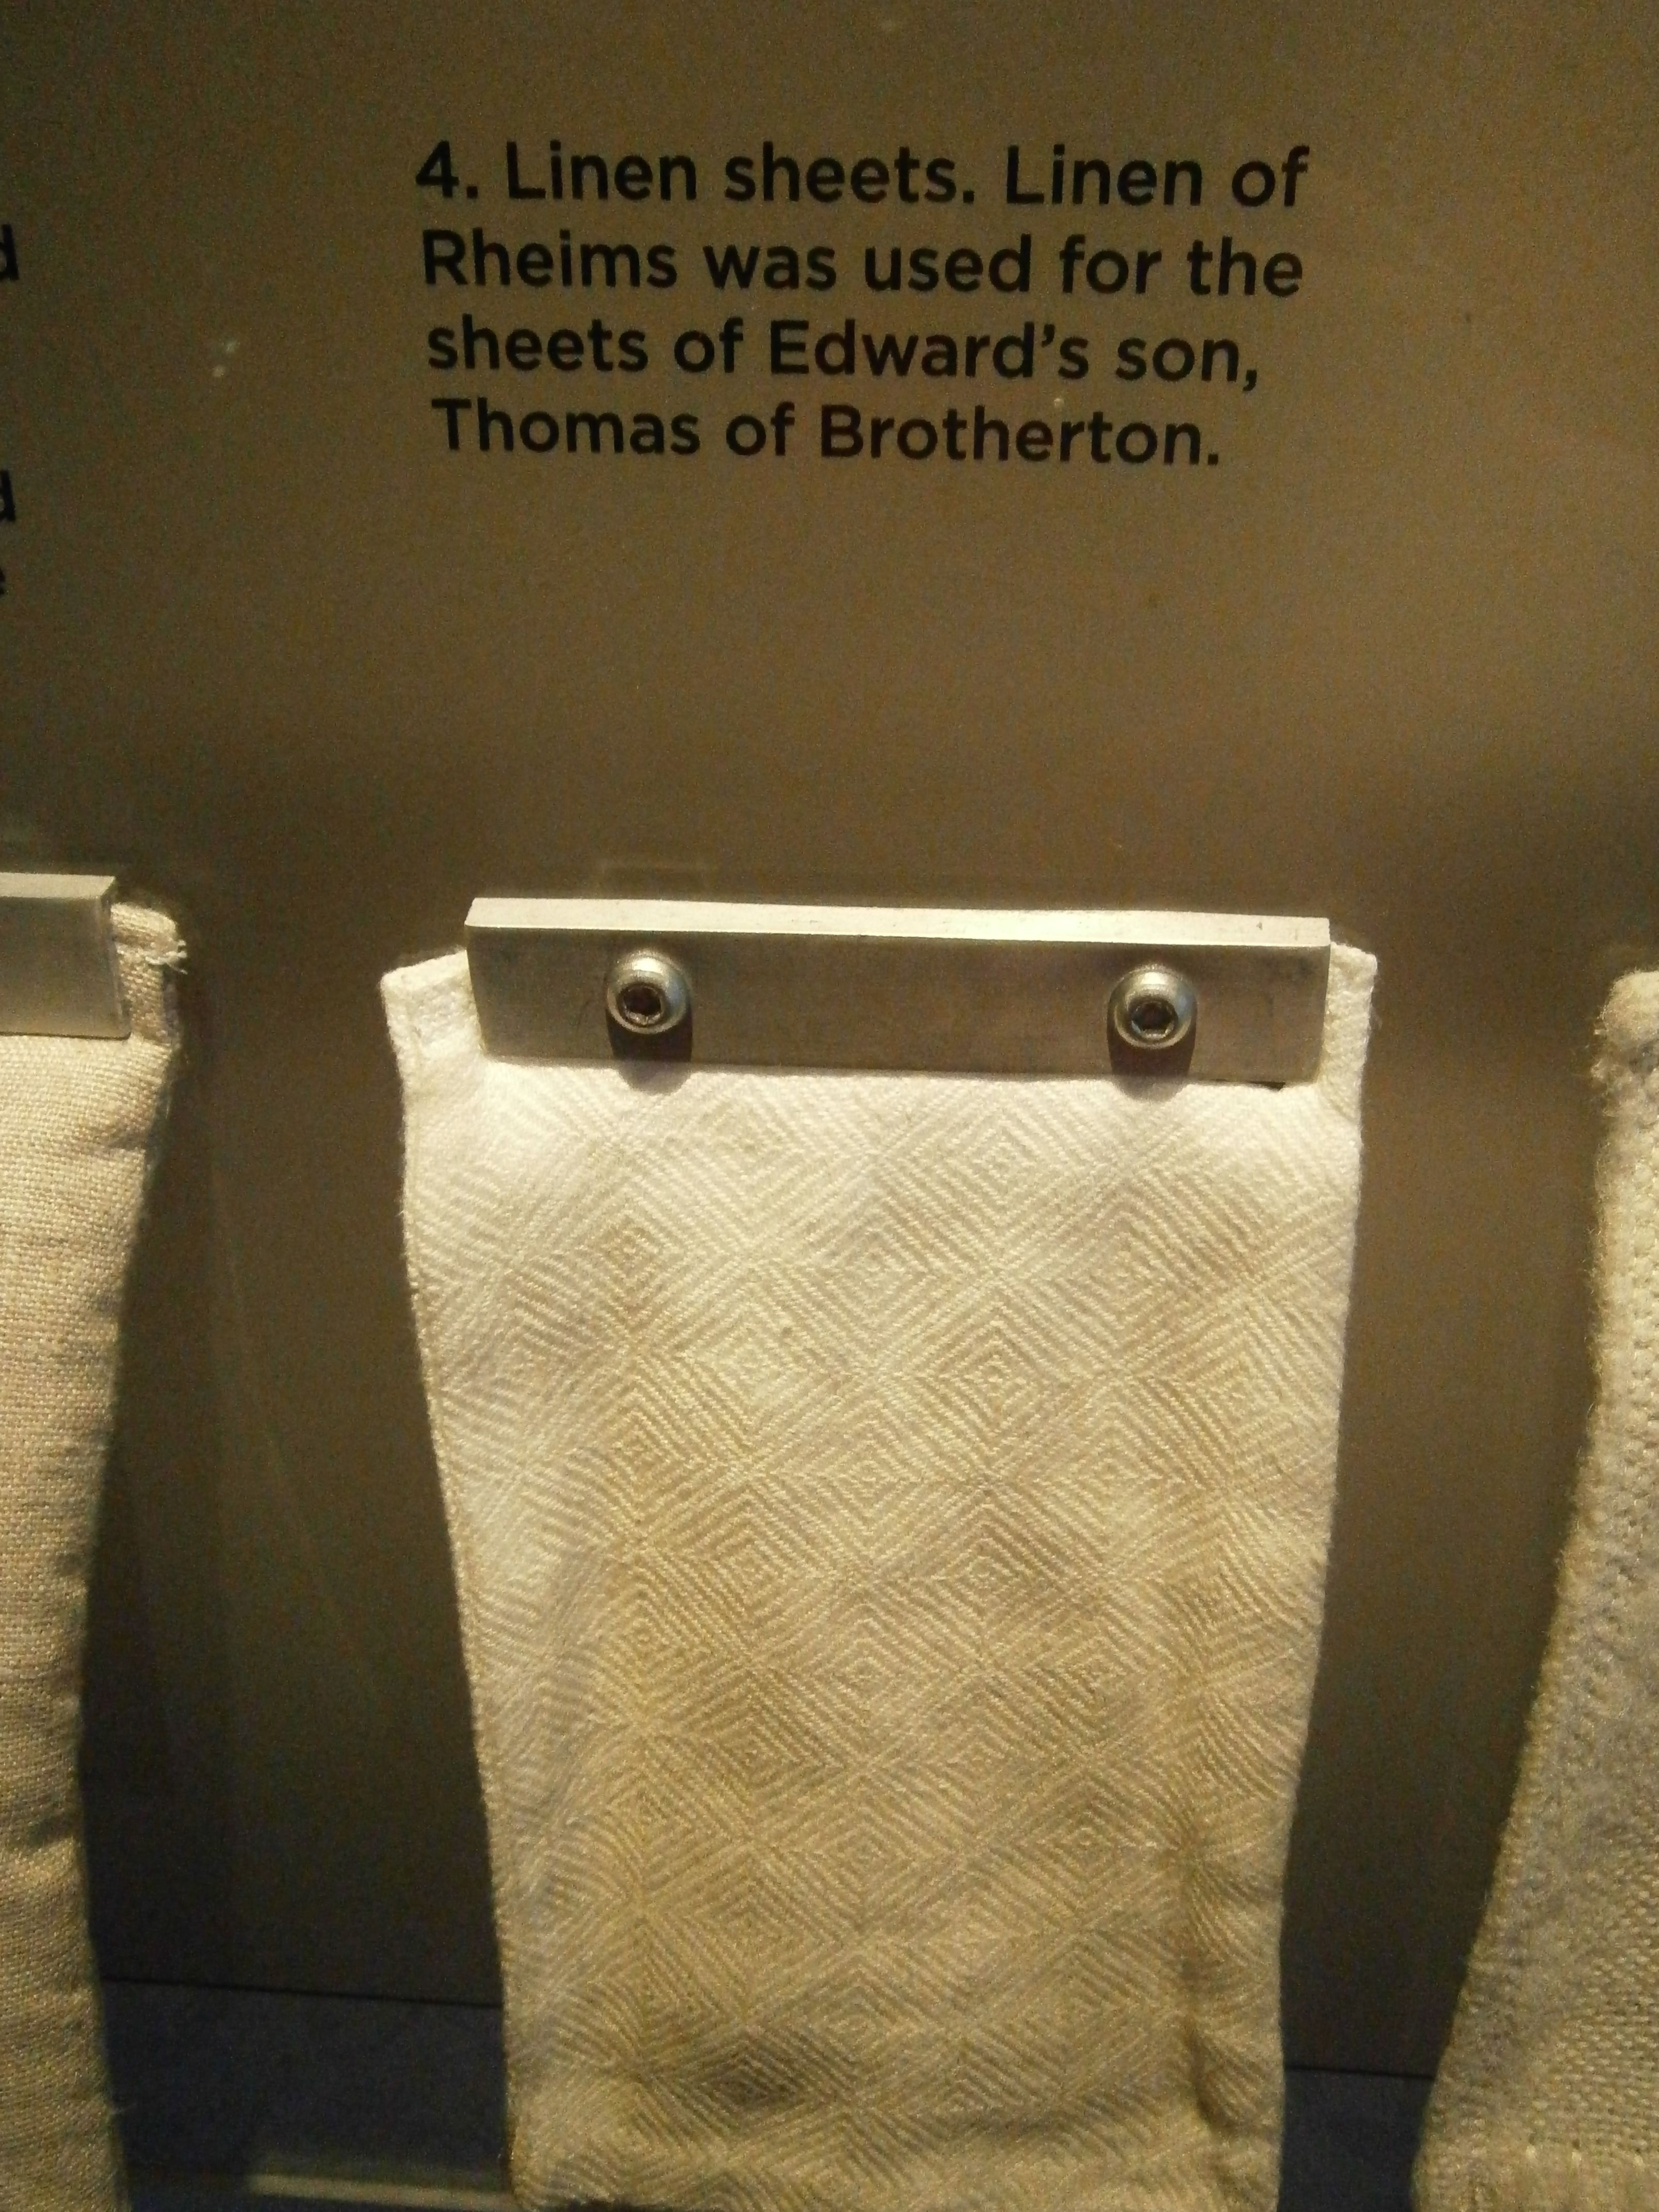 Example of linen sheets, on display in the Tower of London, Bishop's Palace